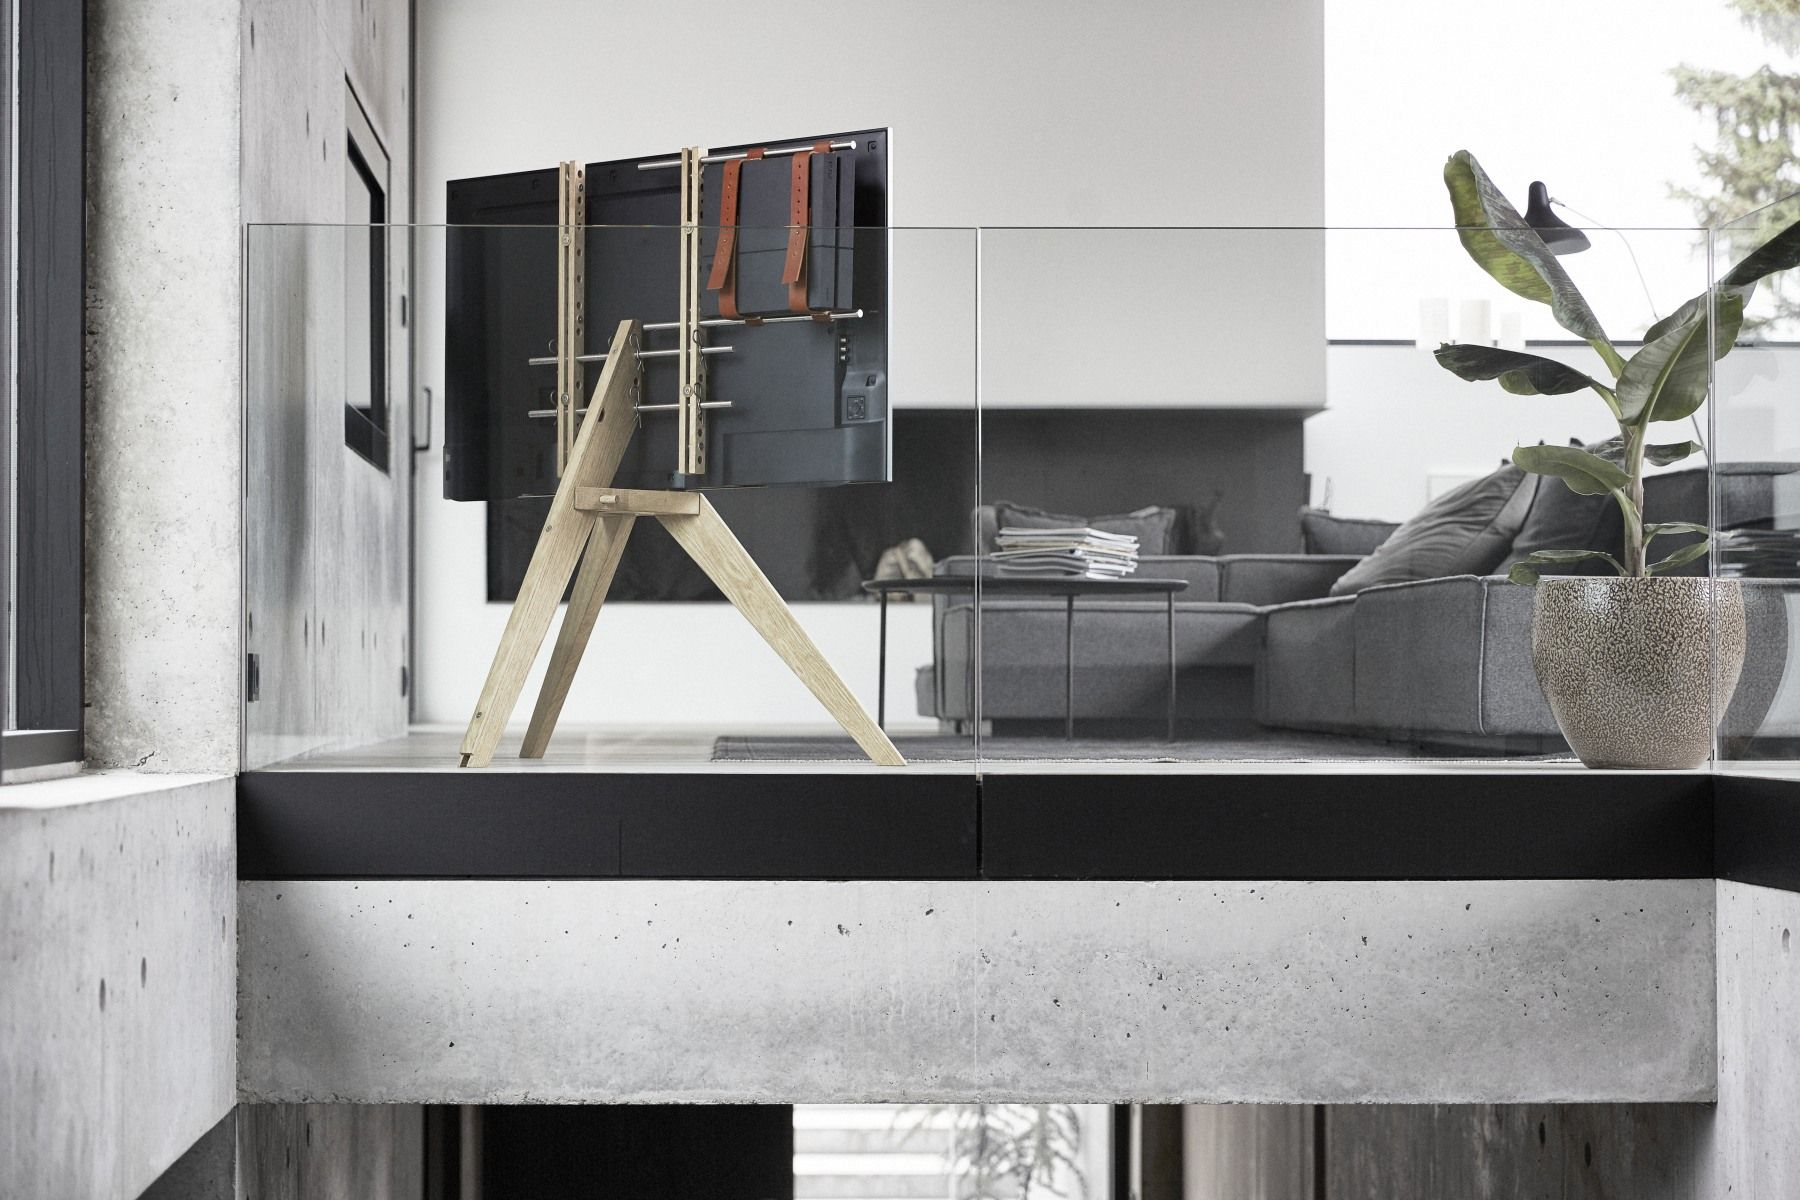 buy online 9b1a8 8ab94 Simply stylish: Vogel's NEXT OP1 TV floor stand - Moss of Bath